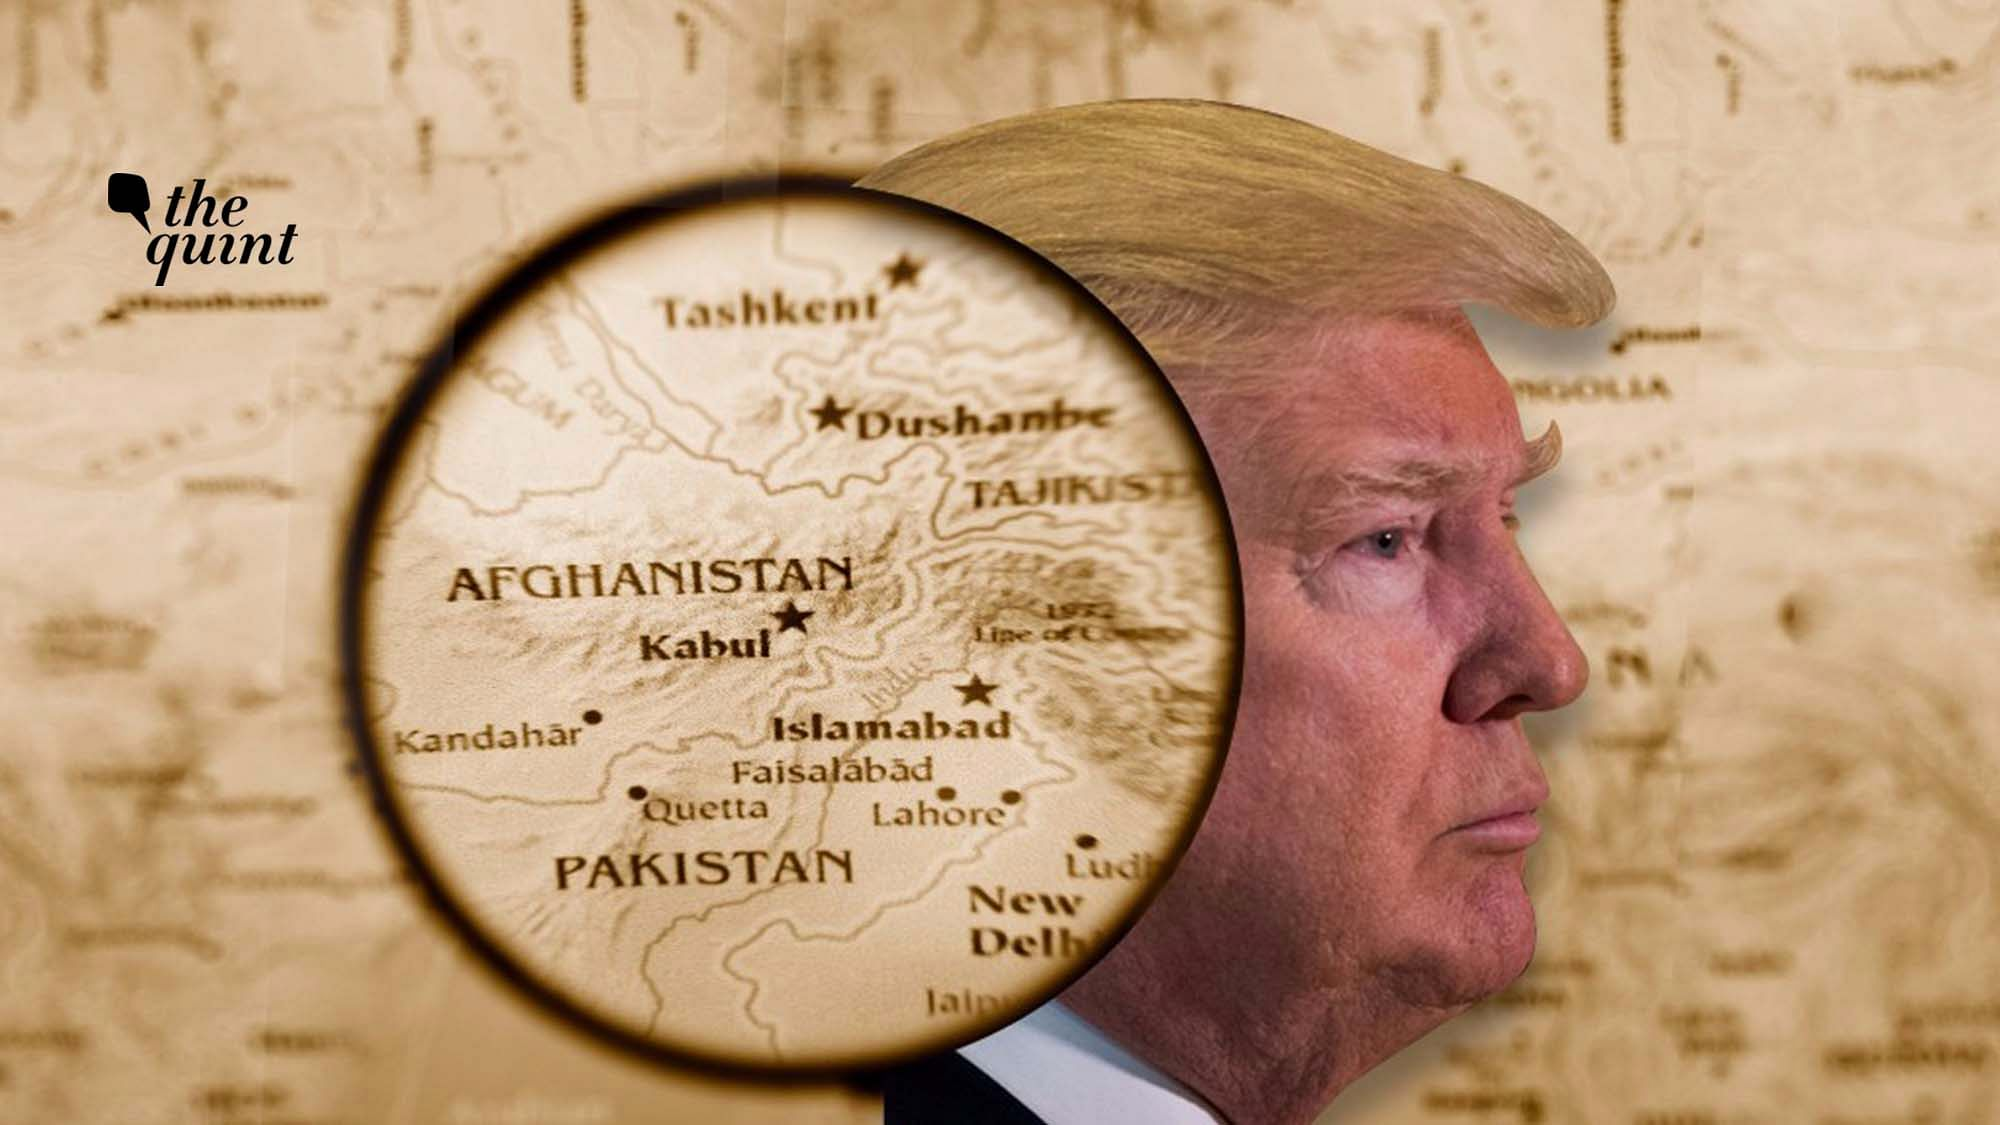 US President Trump's Afghanistan Strategy: What Does He Want?